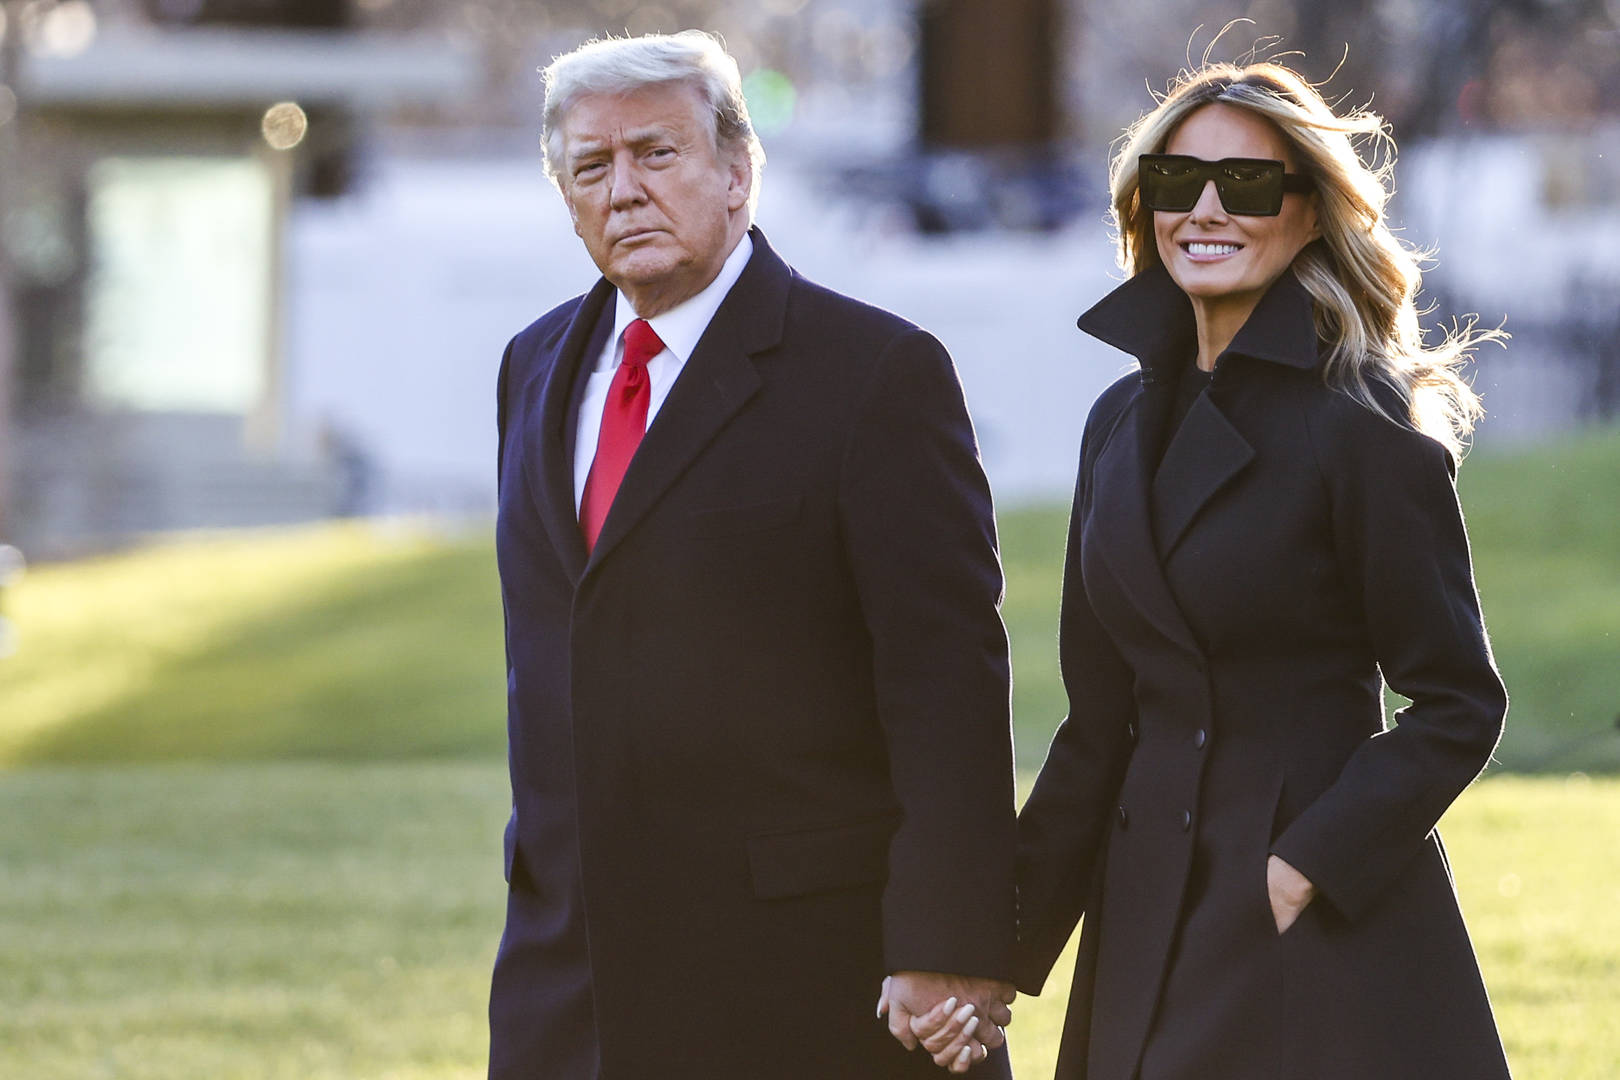 Trump farewell ceremony planned for Wednesday morning ahead of Biden oath